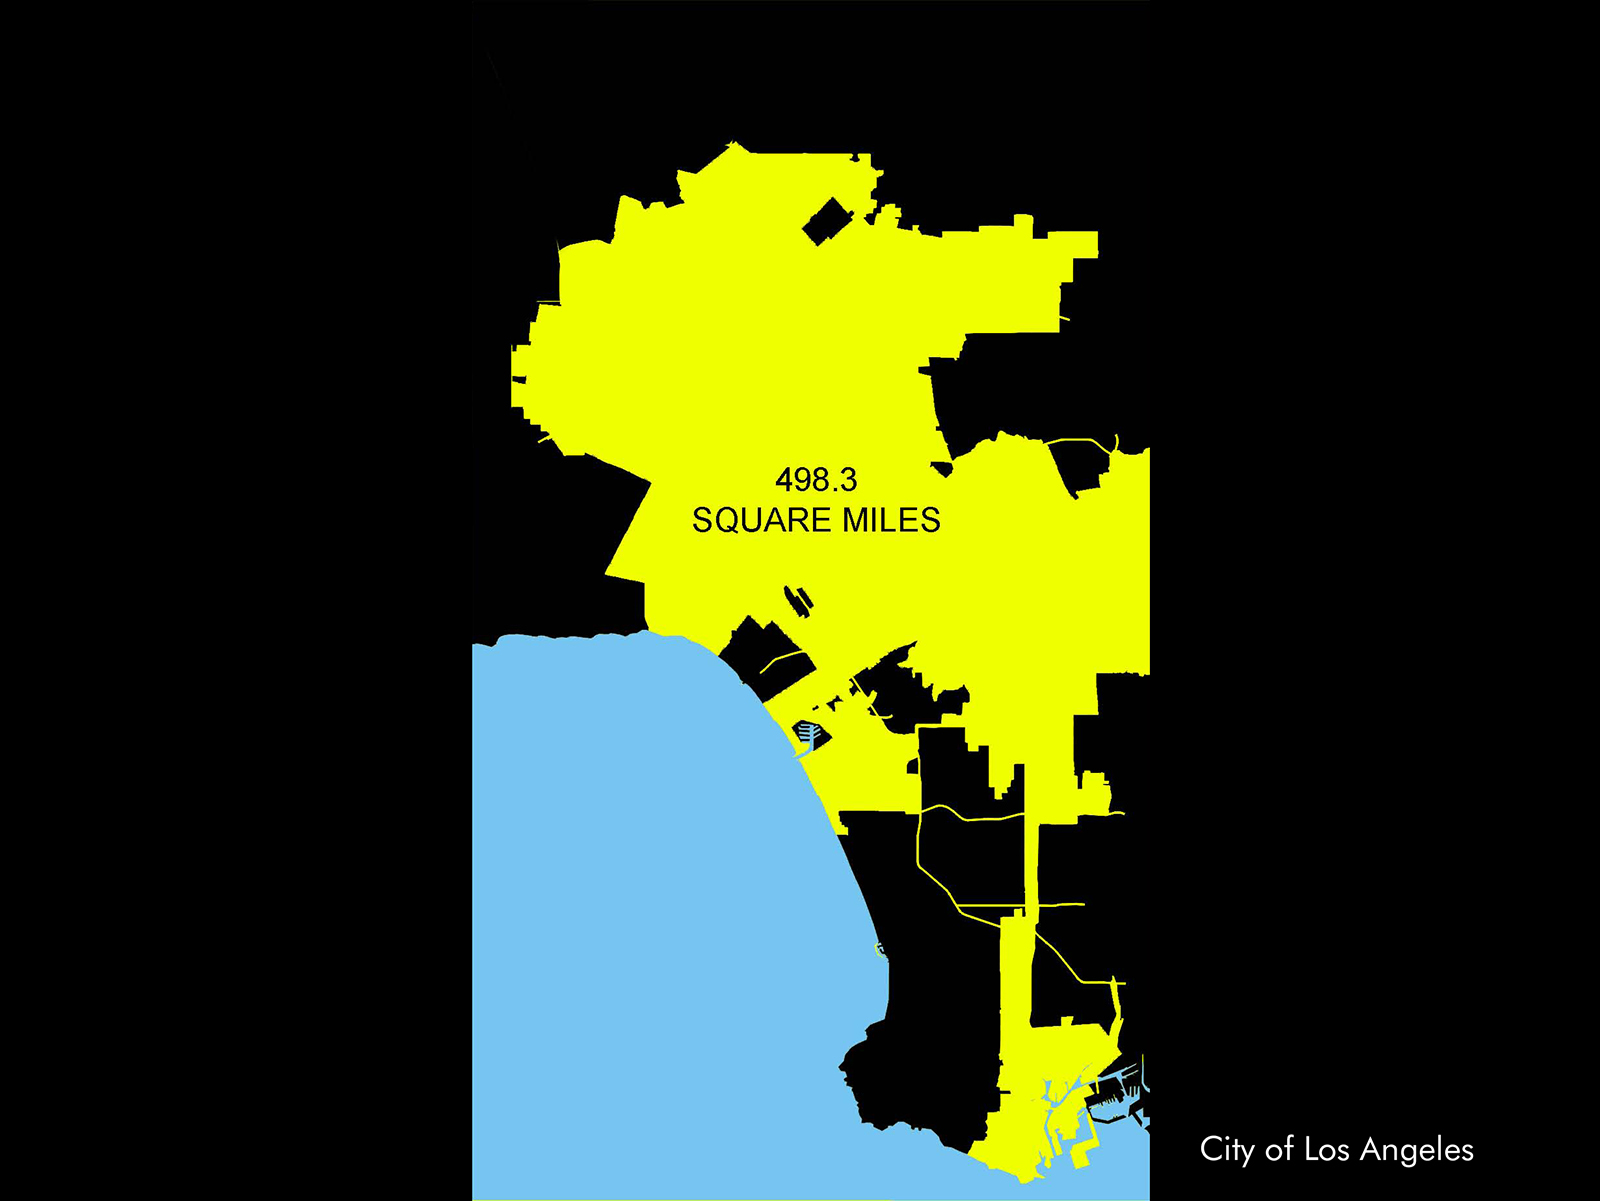 Los Angeles city limits encompass 498.3 square miles.